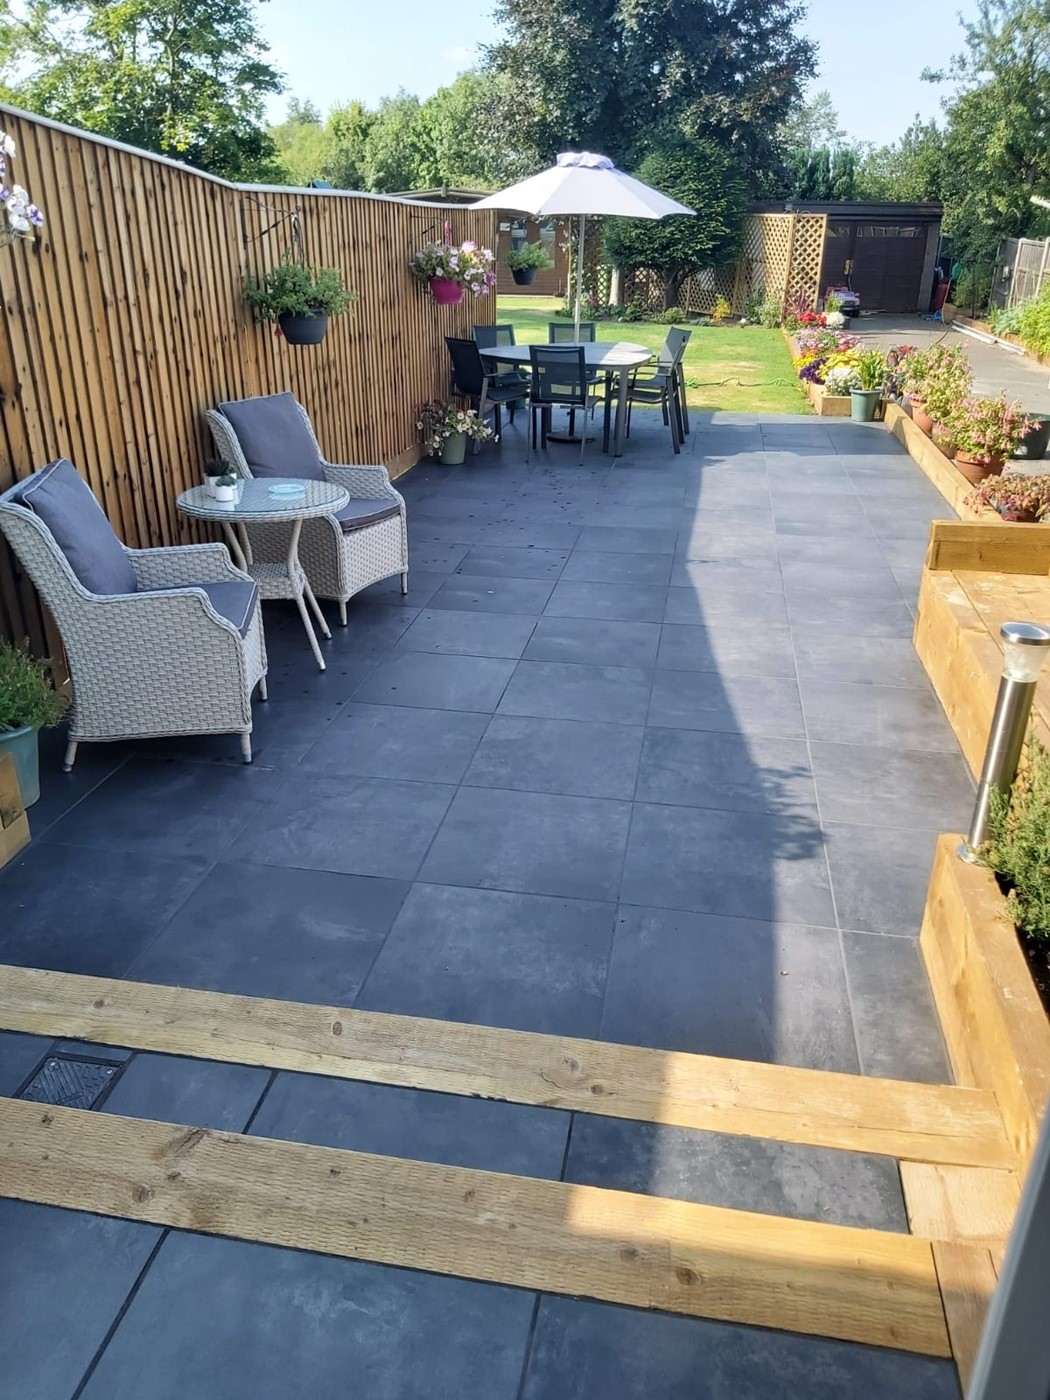 Outdoor seating area Porcelain Paving